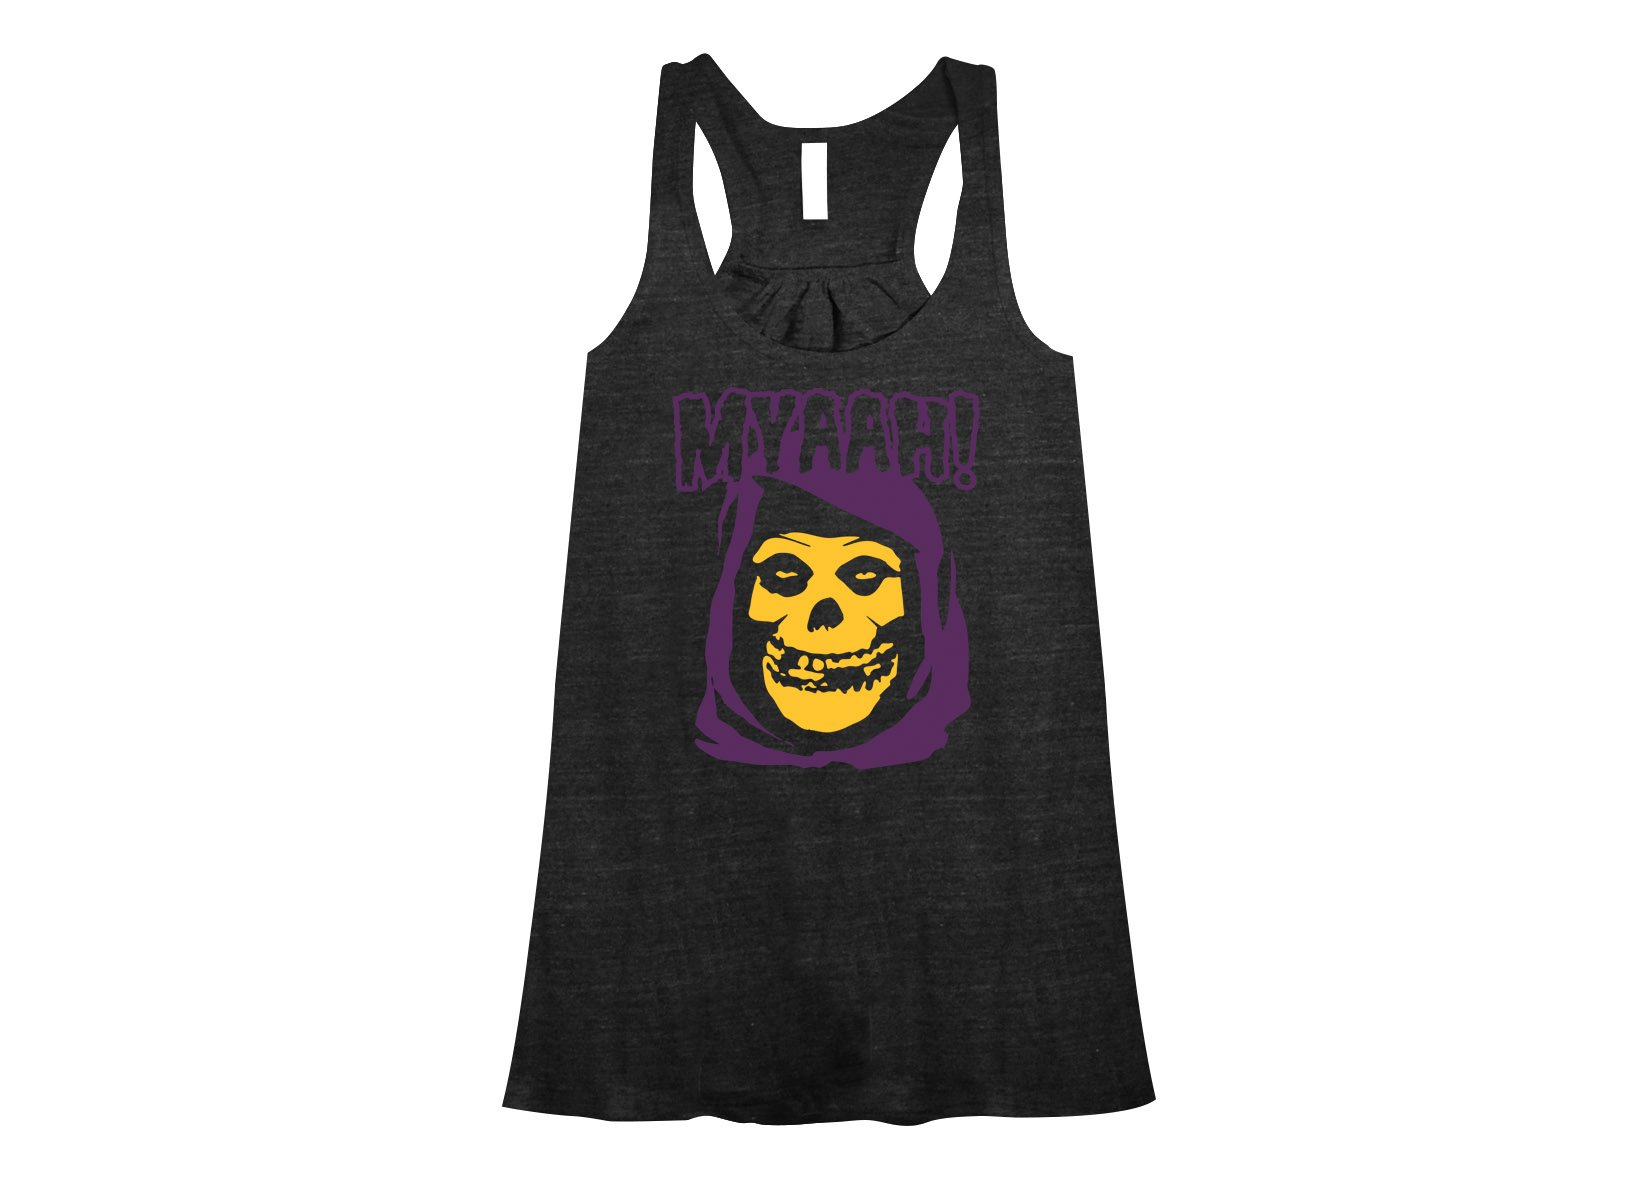 Myaah! on Womens Tanks T-Shirt